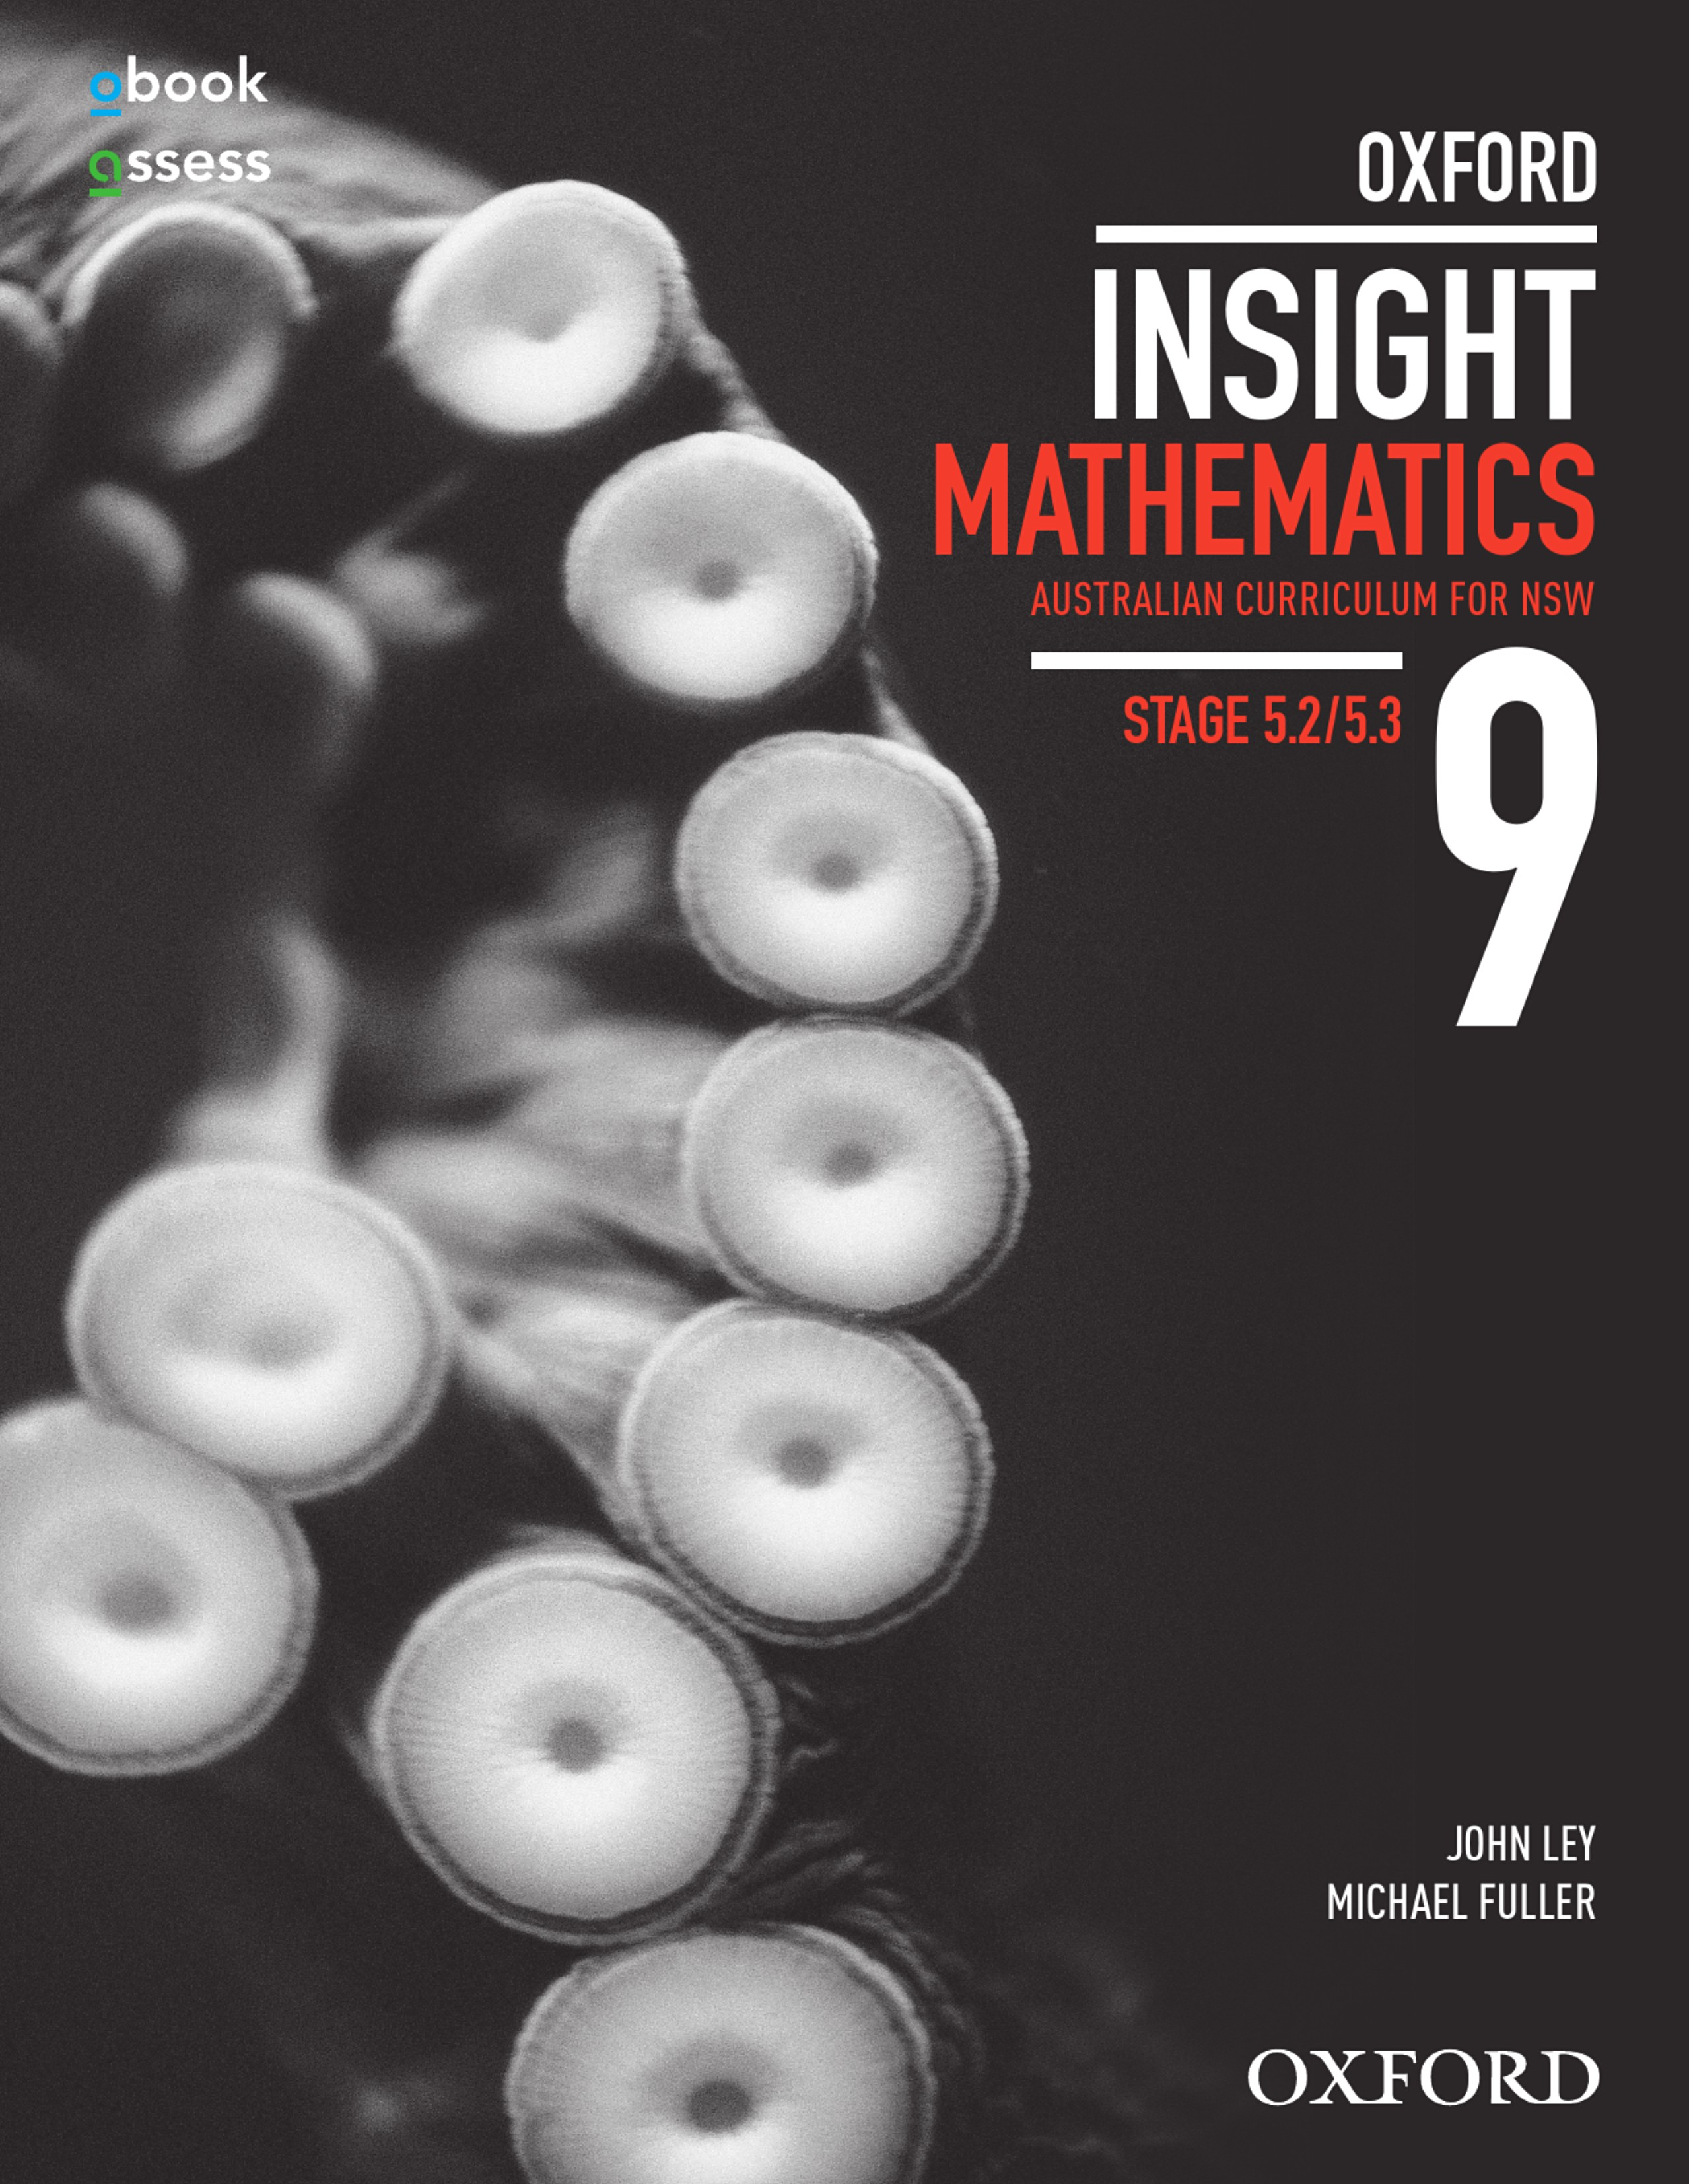 Oxford Insight Mathematics 9 Australian Curriculum for NSW Stages 5.2/5.3